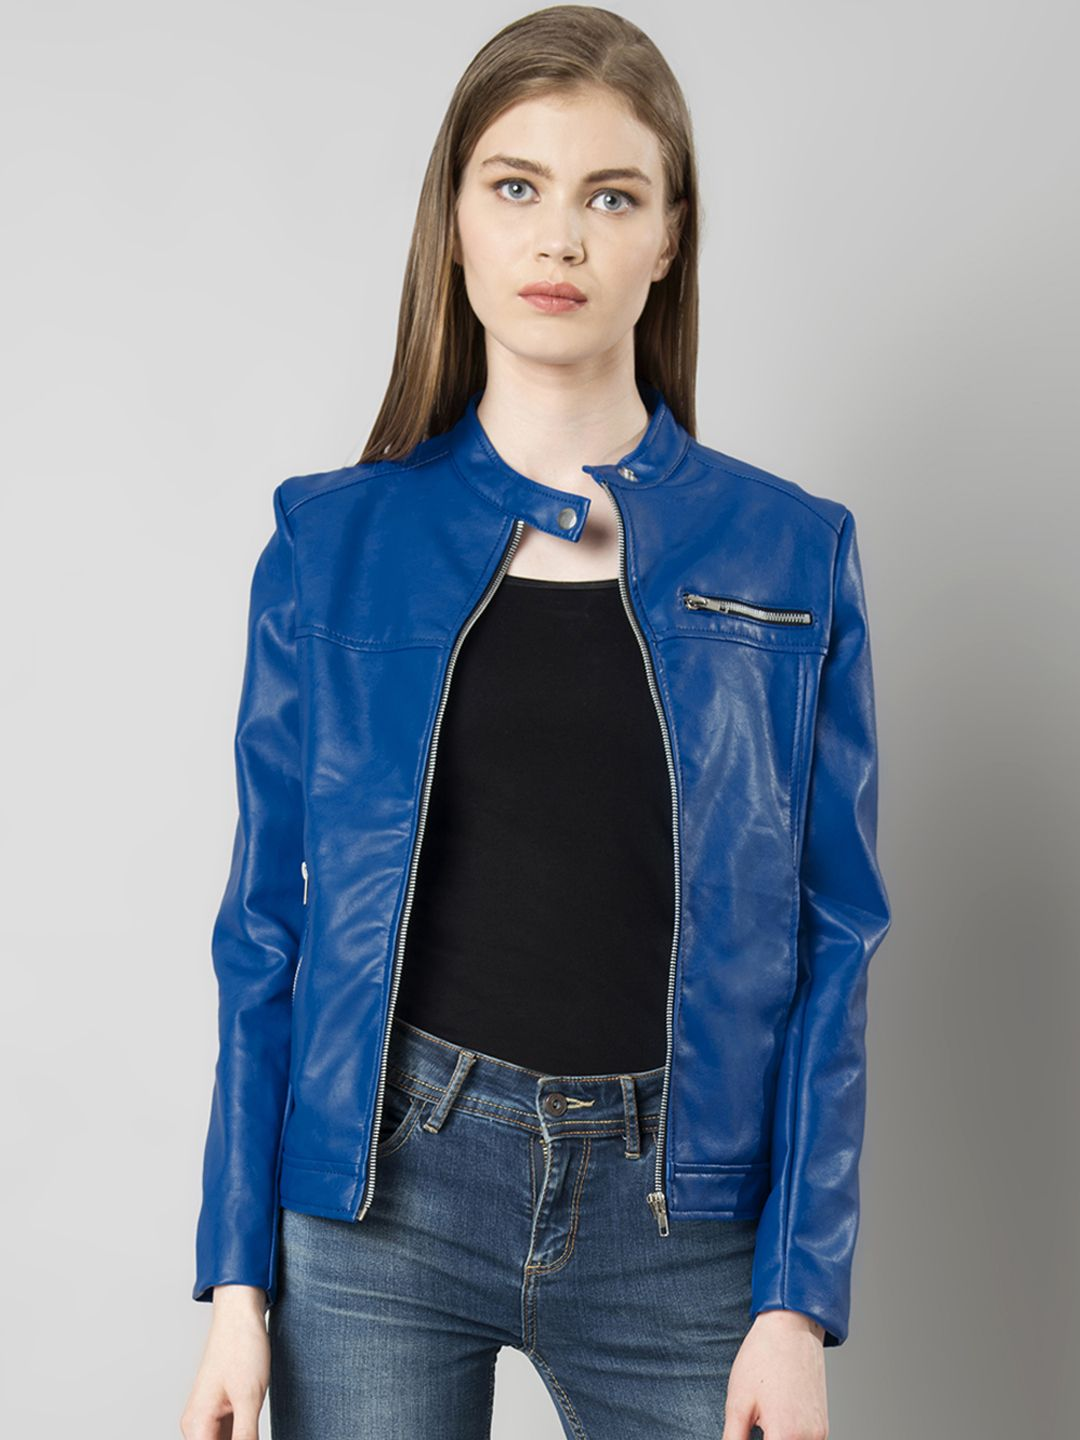 Buy FabAlley Women Blue Solid Leather Jacket Apparel